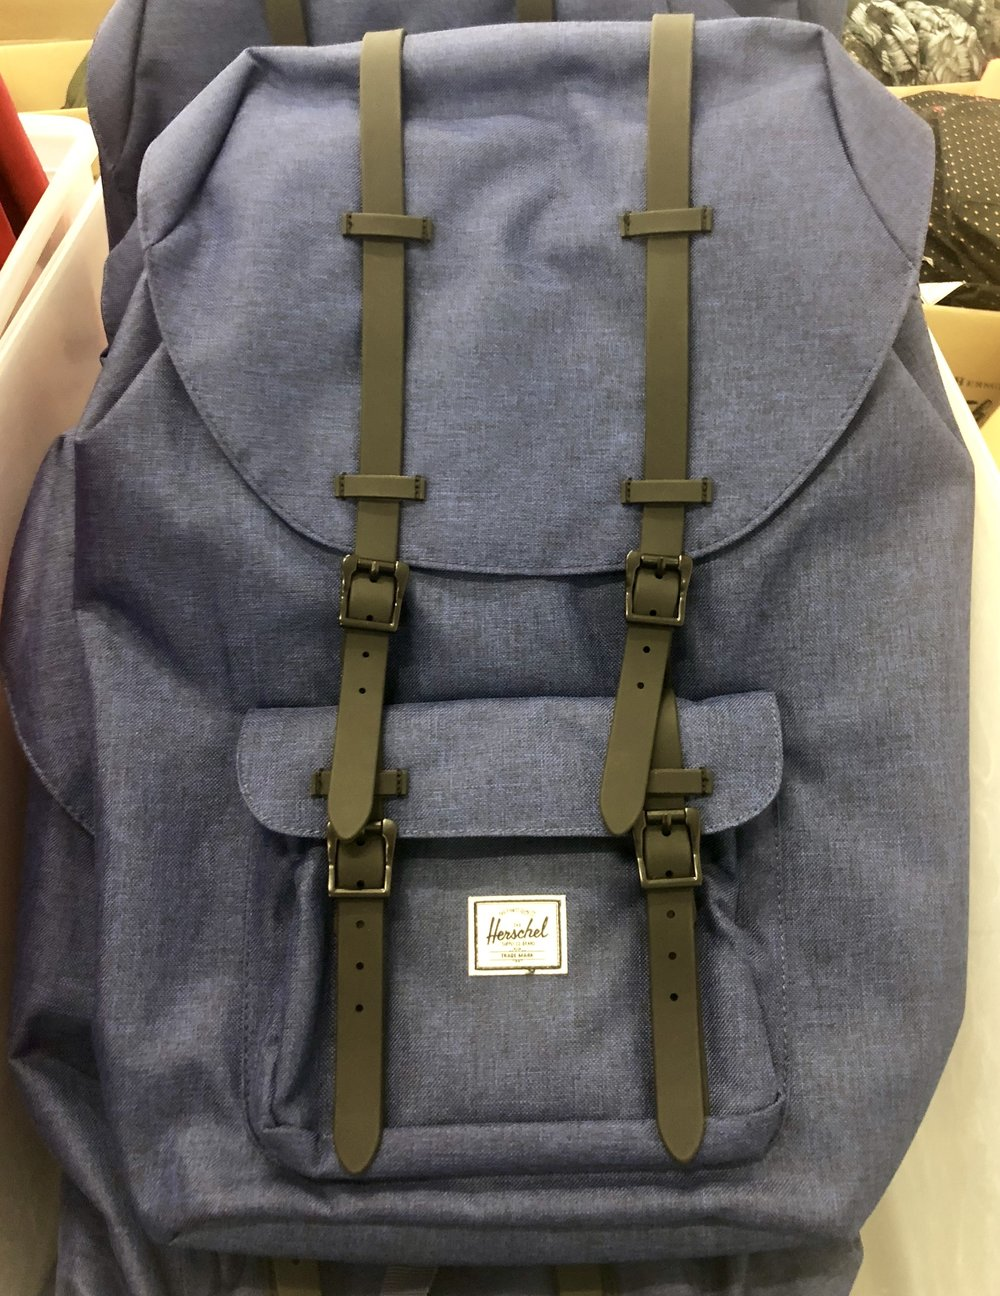 Backpack 3.jpg